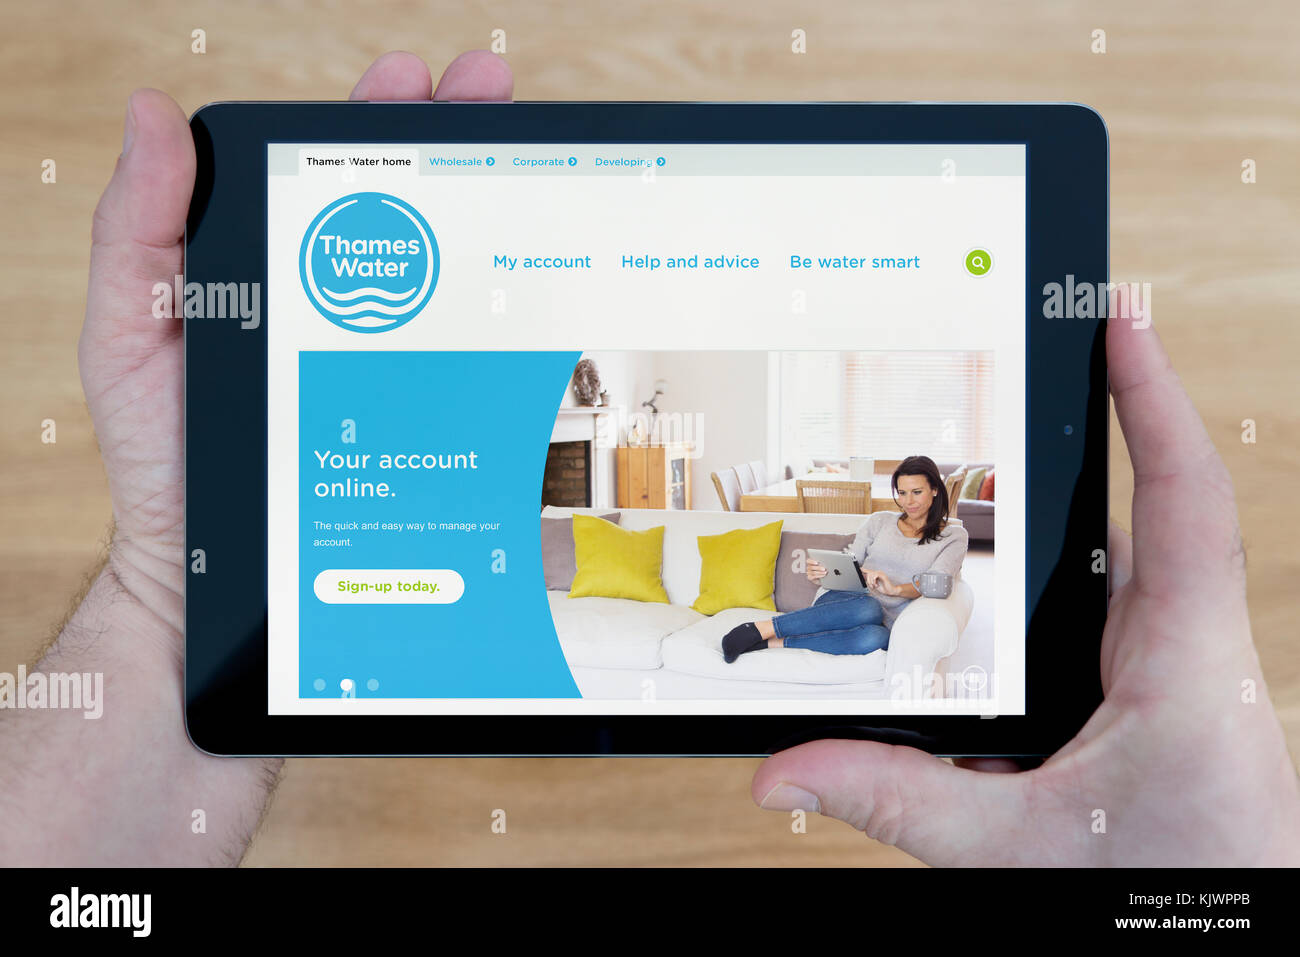 A man looks at the Thames Water website on his iPad tablet device, shot against a wooden table top background (Editorial - Stock Image